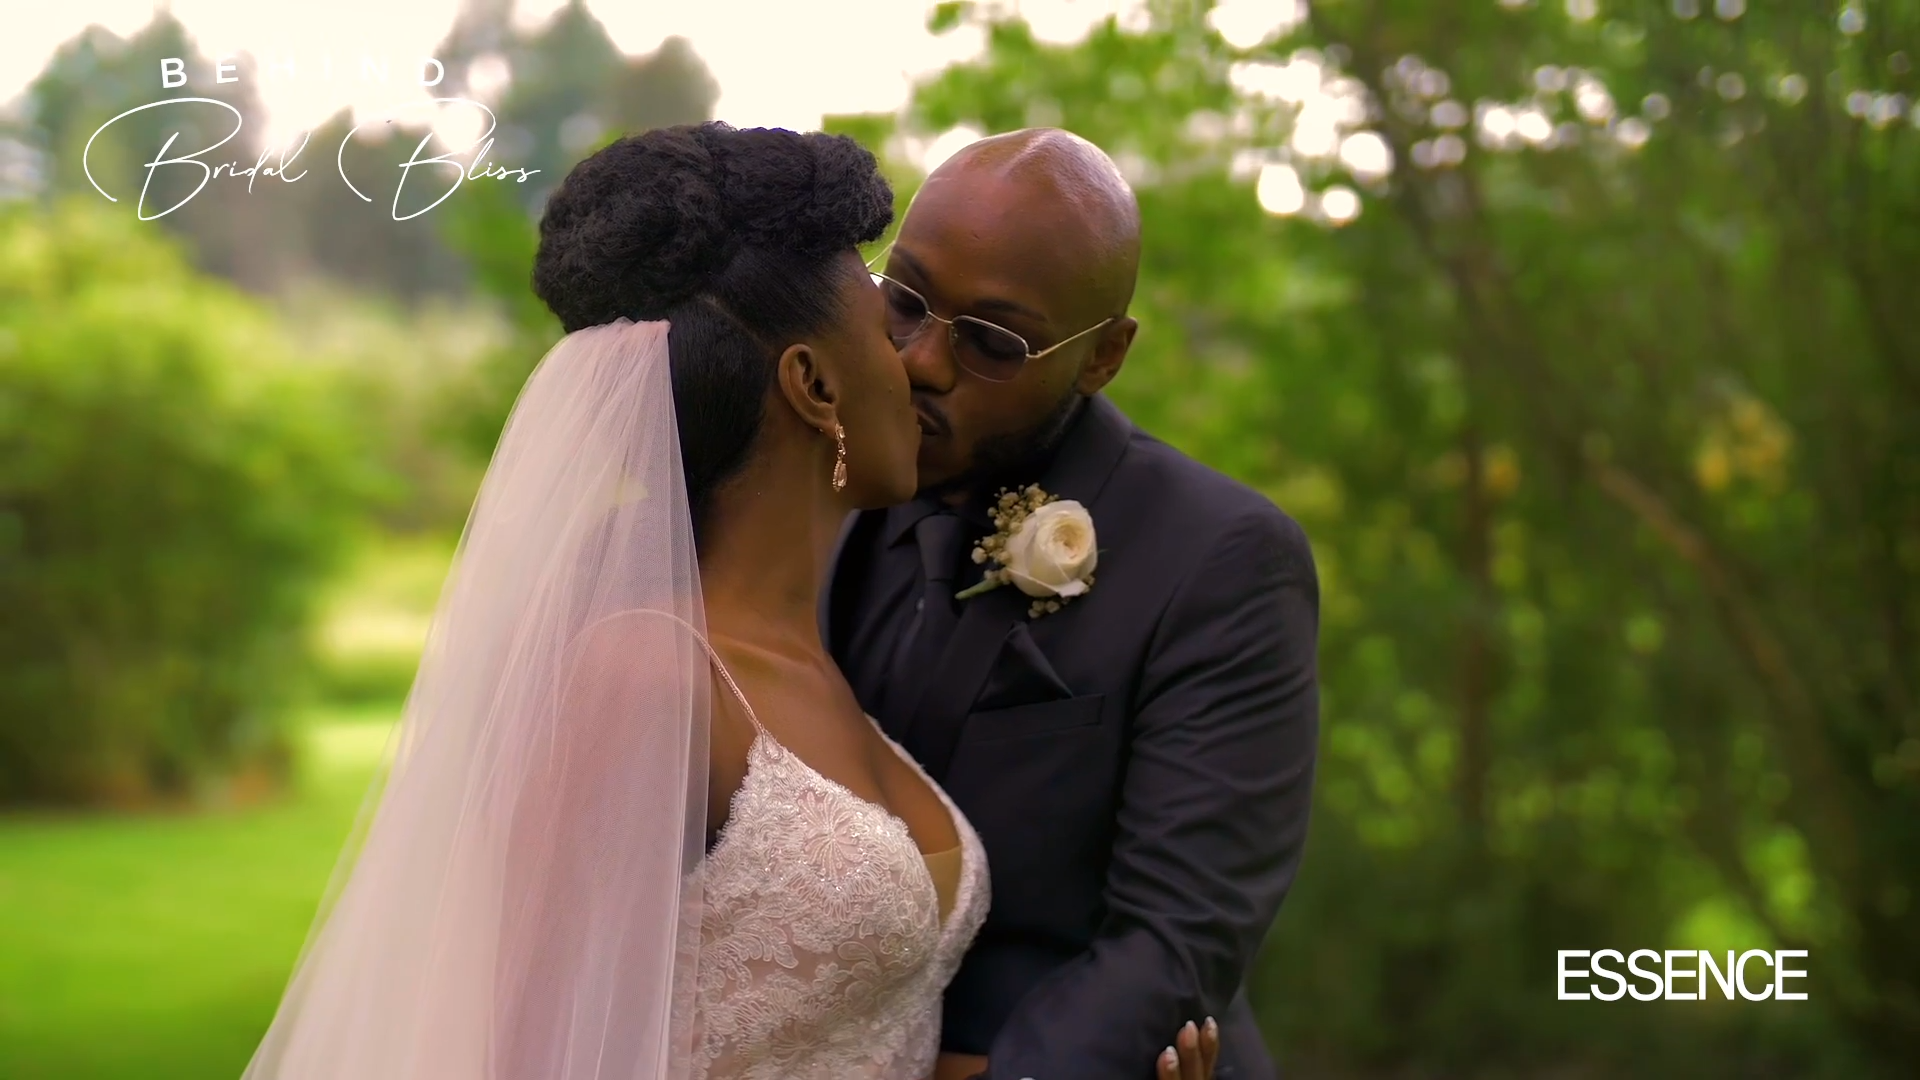 Watch The Premiere Episode Of ESSENCE's Behind Bridal Bliss Series: Groom Takes Bride's Last Name